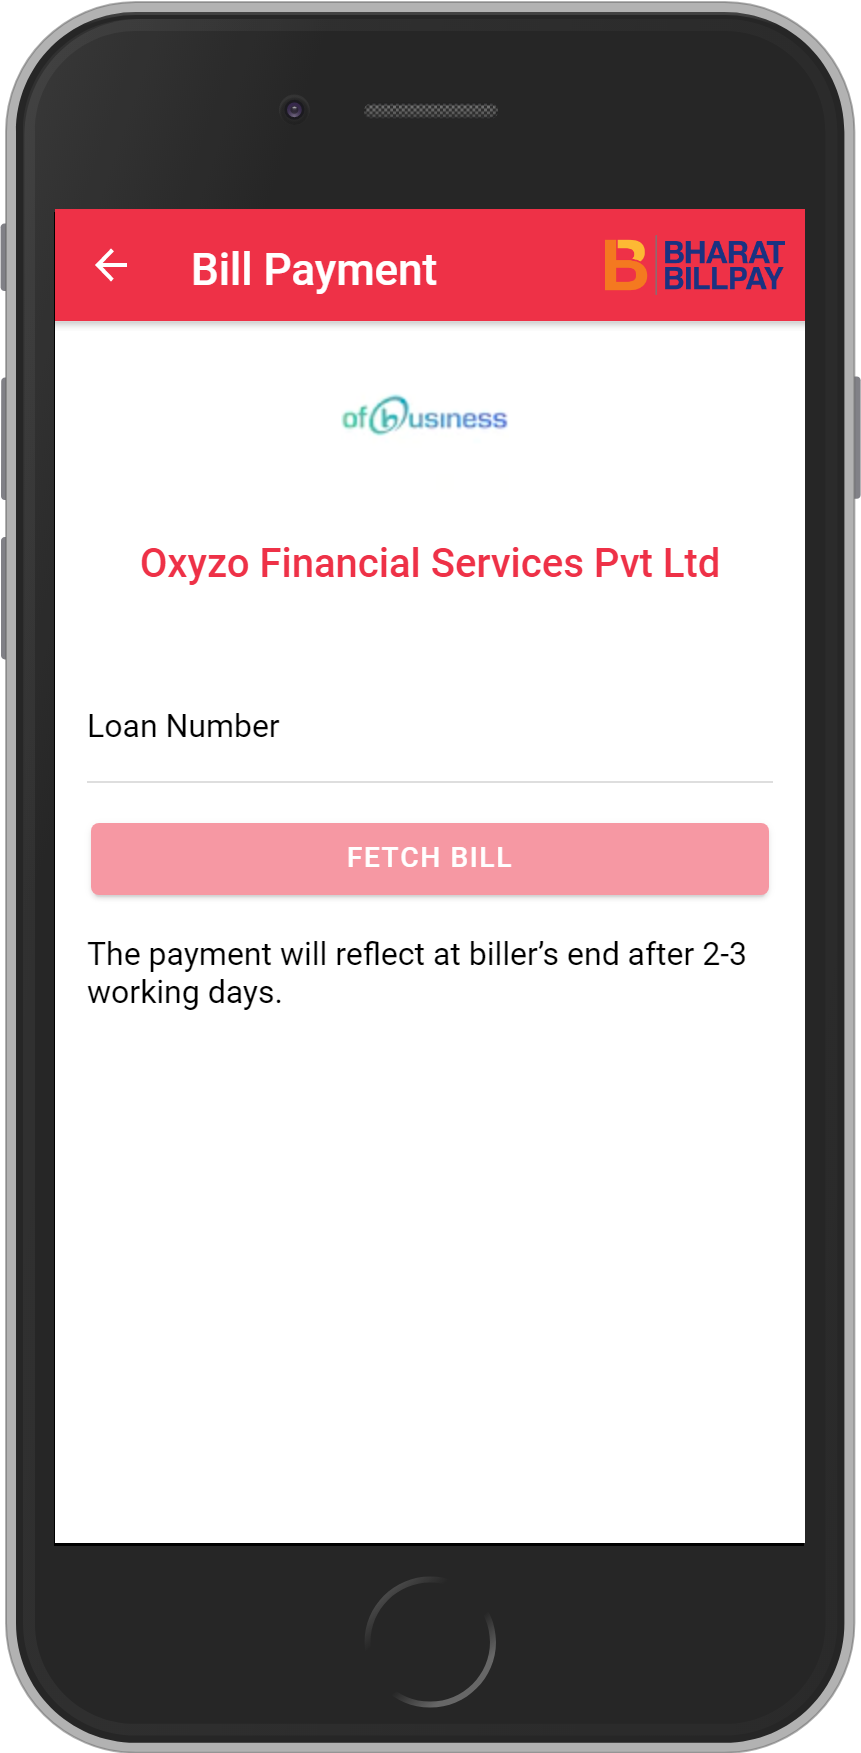 Get UNLIMITED <b>0.1%</b> CASHBACK on Oxyzo Financial Services Pvt Ltd Loan Payment.